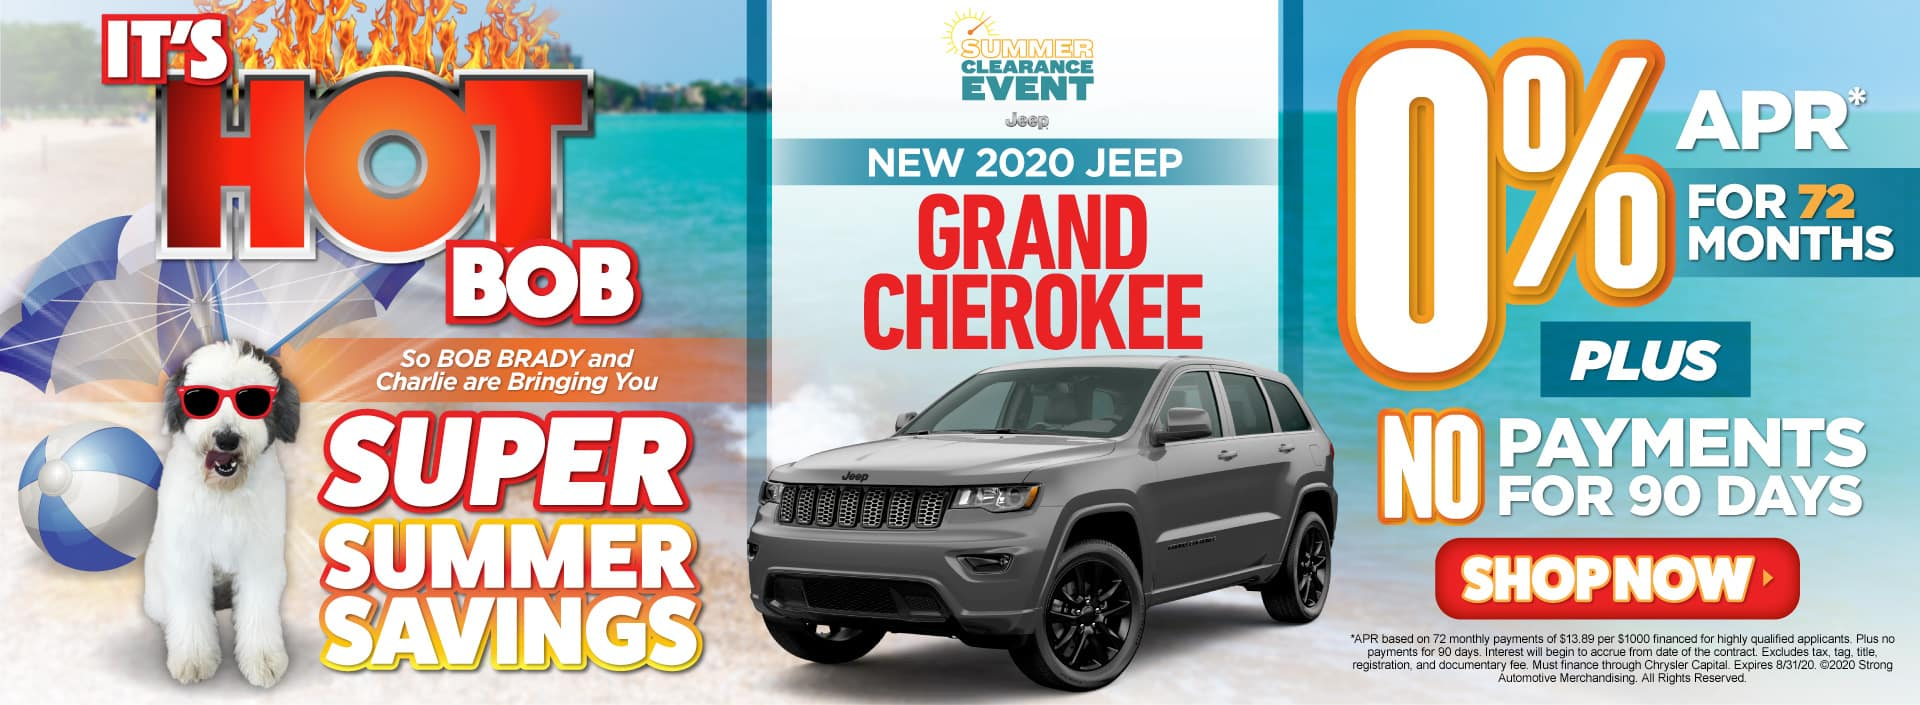 New 2020 Jeep Grand Cherokee - 0% apr for 72 months - Act Now